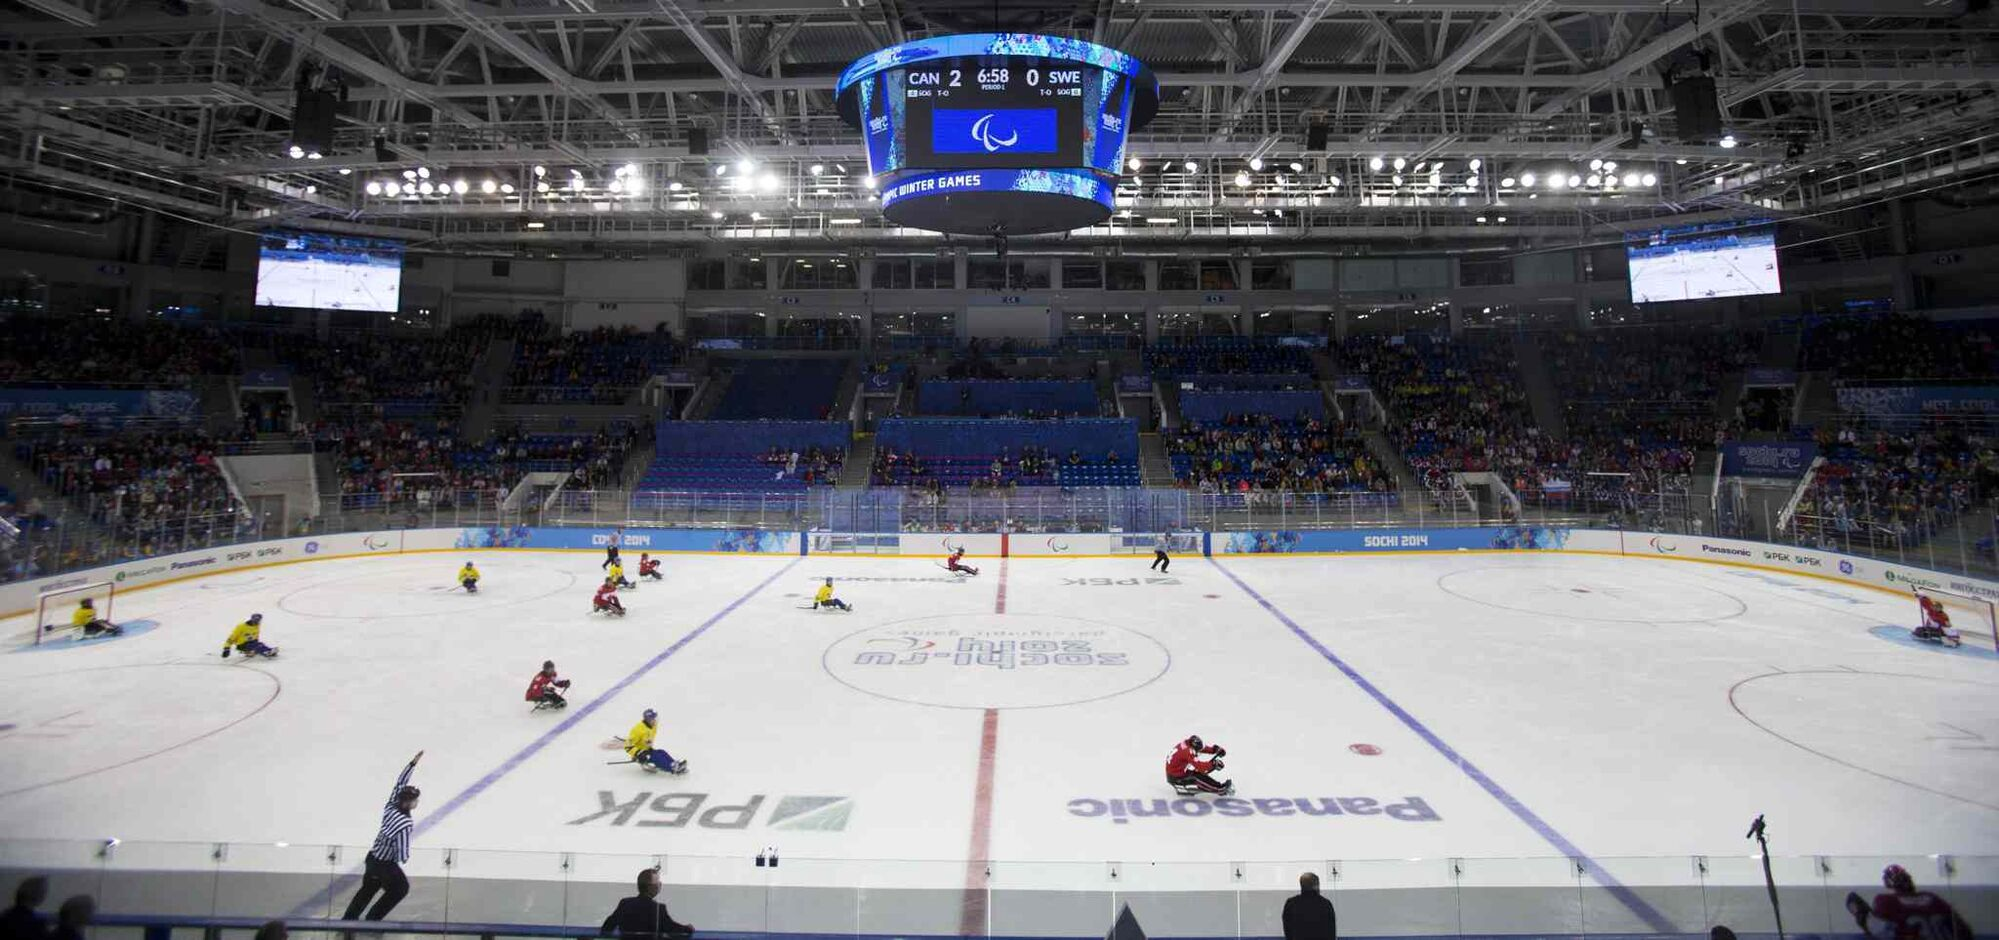 Teams of Canada and Sweden in action during the ice sledge hockey match at the Shayba Arena at the 2014 Winter Paralympics in Sochi, Russia, Saturday, March 8, 2014. Canada went on to win the match 10-1.  (Pavel Golovkin / The Associated Press)